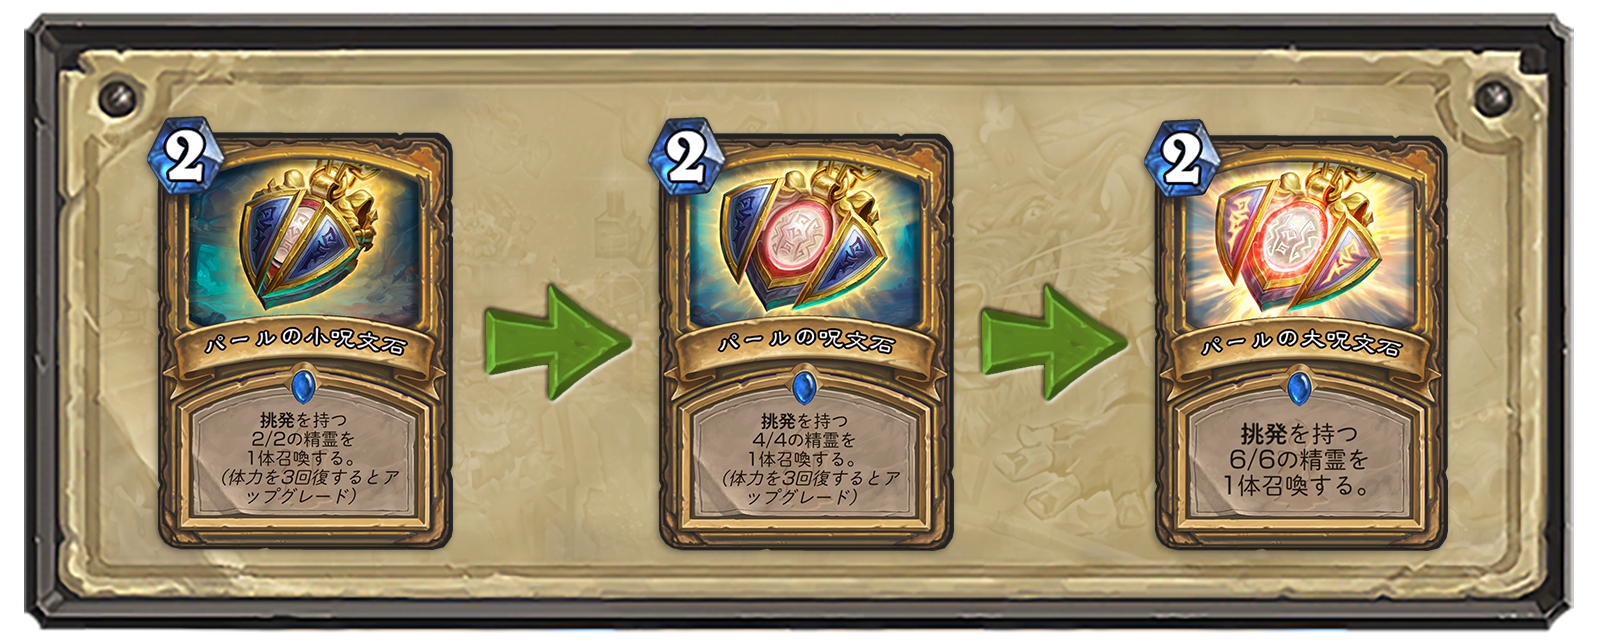 jaJP_Cards_HS_Pearl_LW_1000x690.png